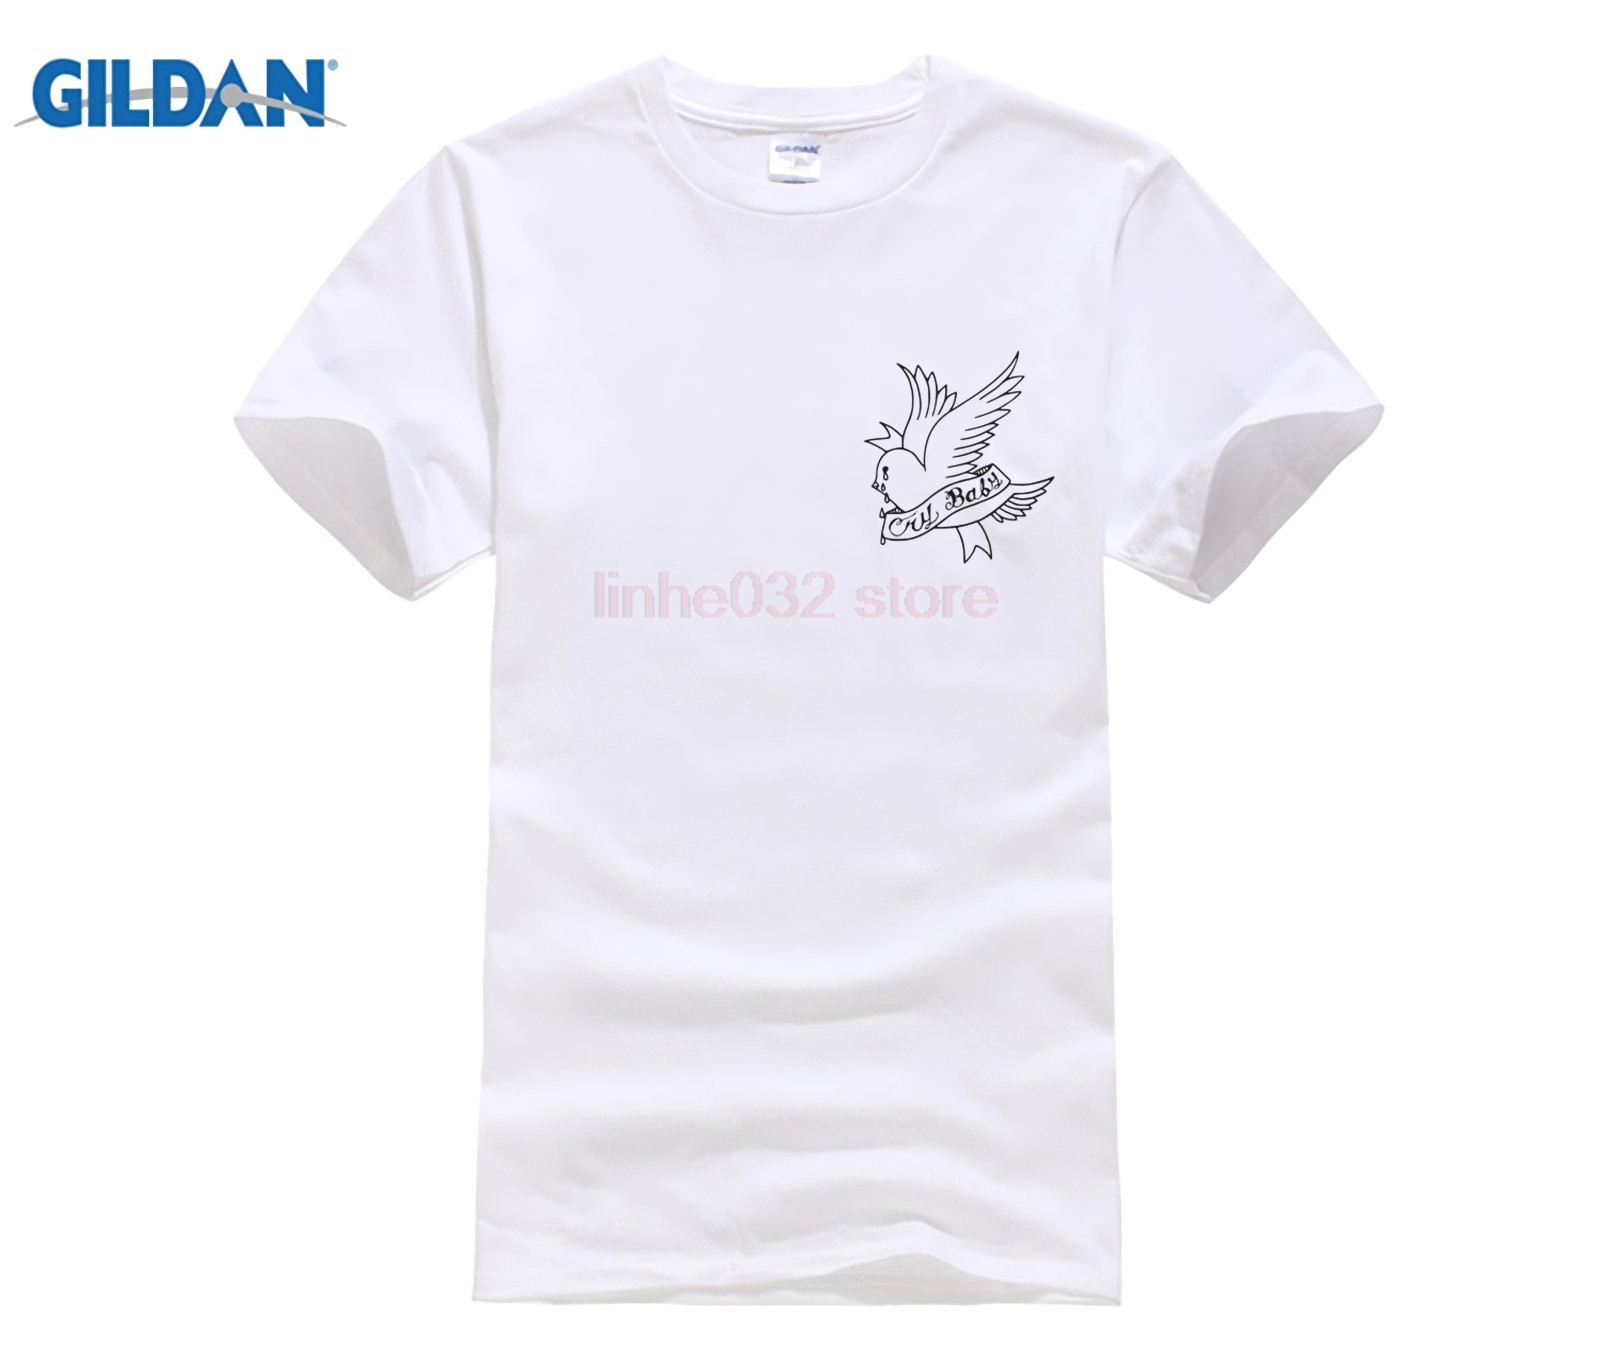 fca410de Buy crybaby shirt and get free shipping on AliExpress.com